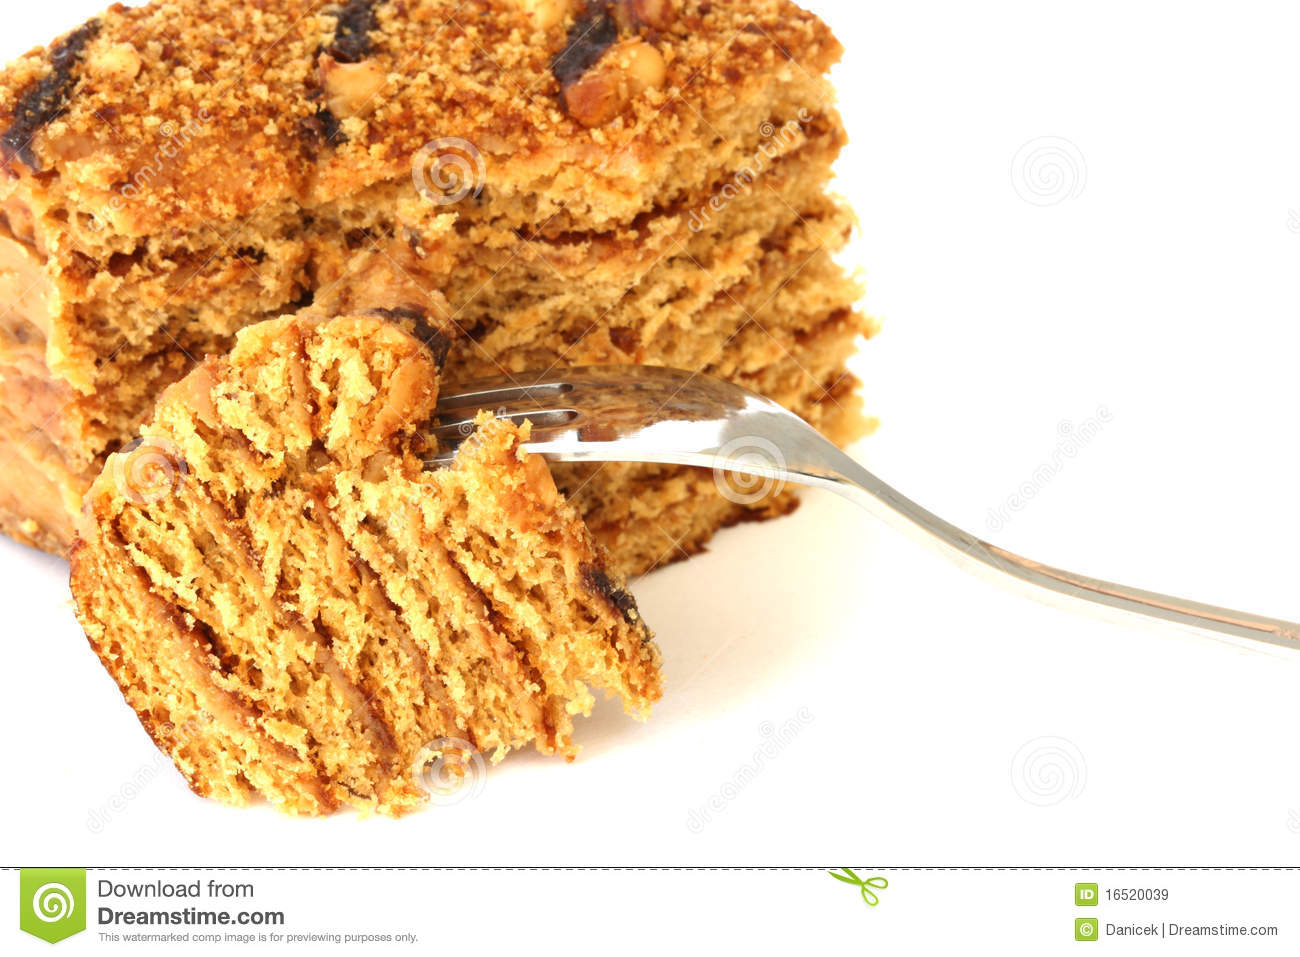 Clipart Of Honey Cake : Honey Cake Royalty Free Stock Images - Image: 16520039